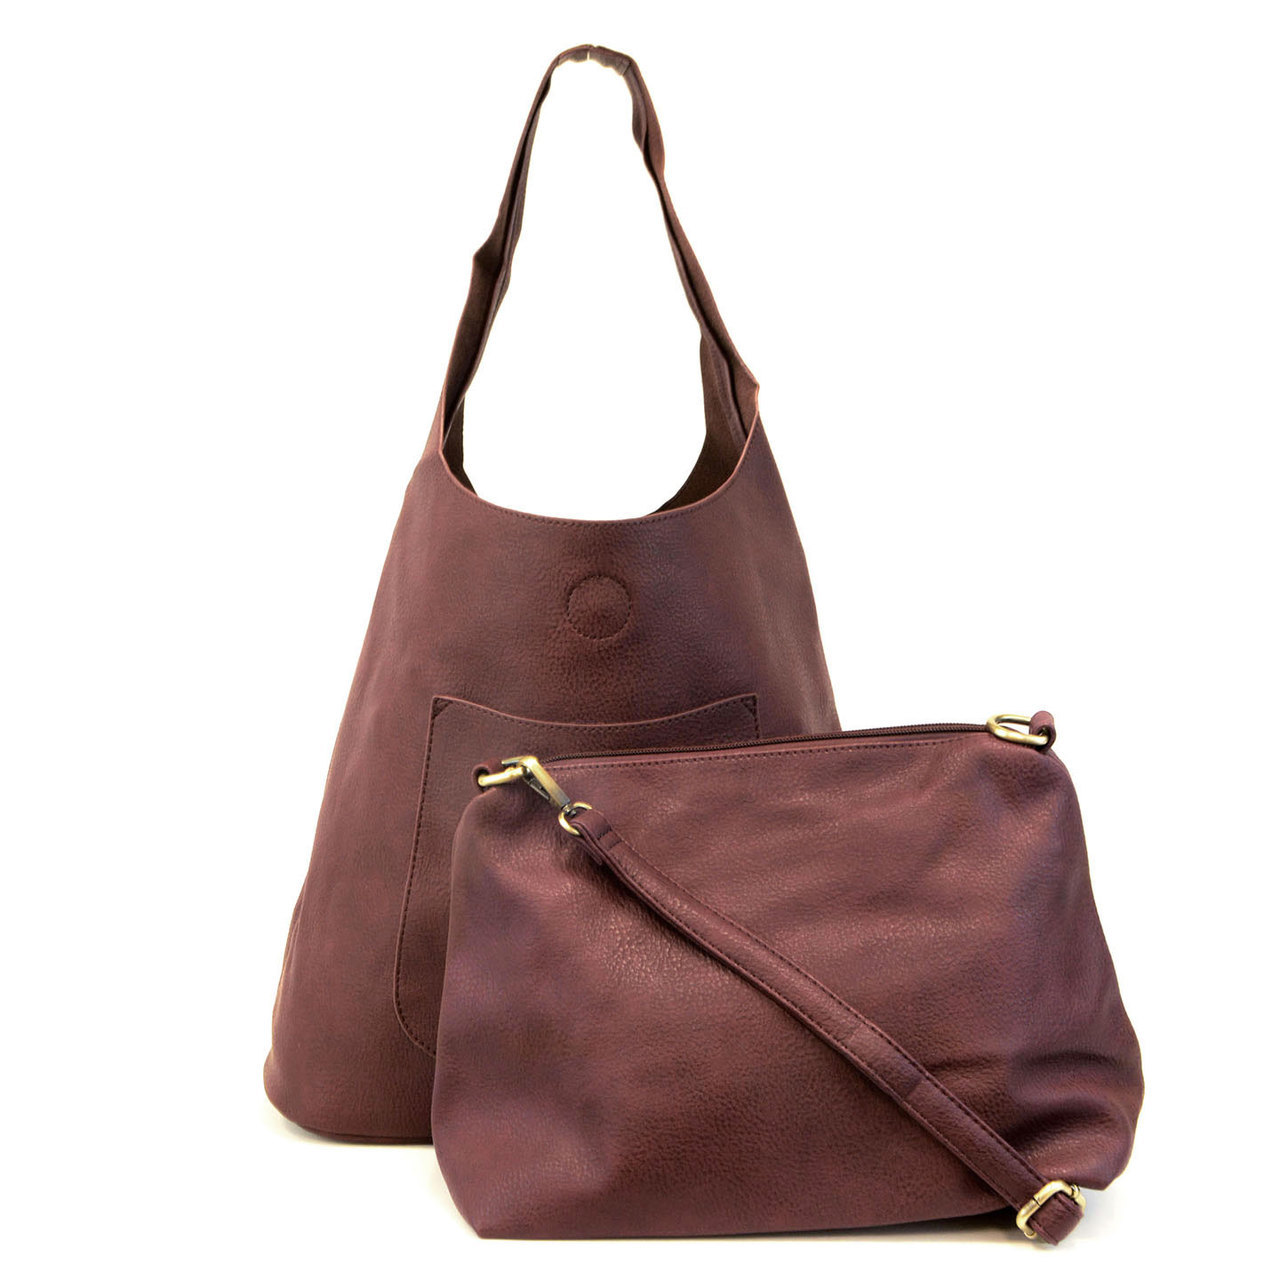 We Re Really Excited To Be Carrying This Line Of Affordable Fashionable Bags That Everyone Can Enjoy Thanks Joy Susan Style Doesn T Have